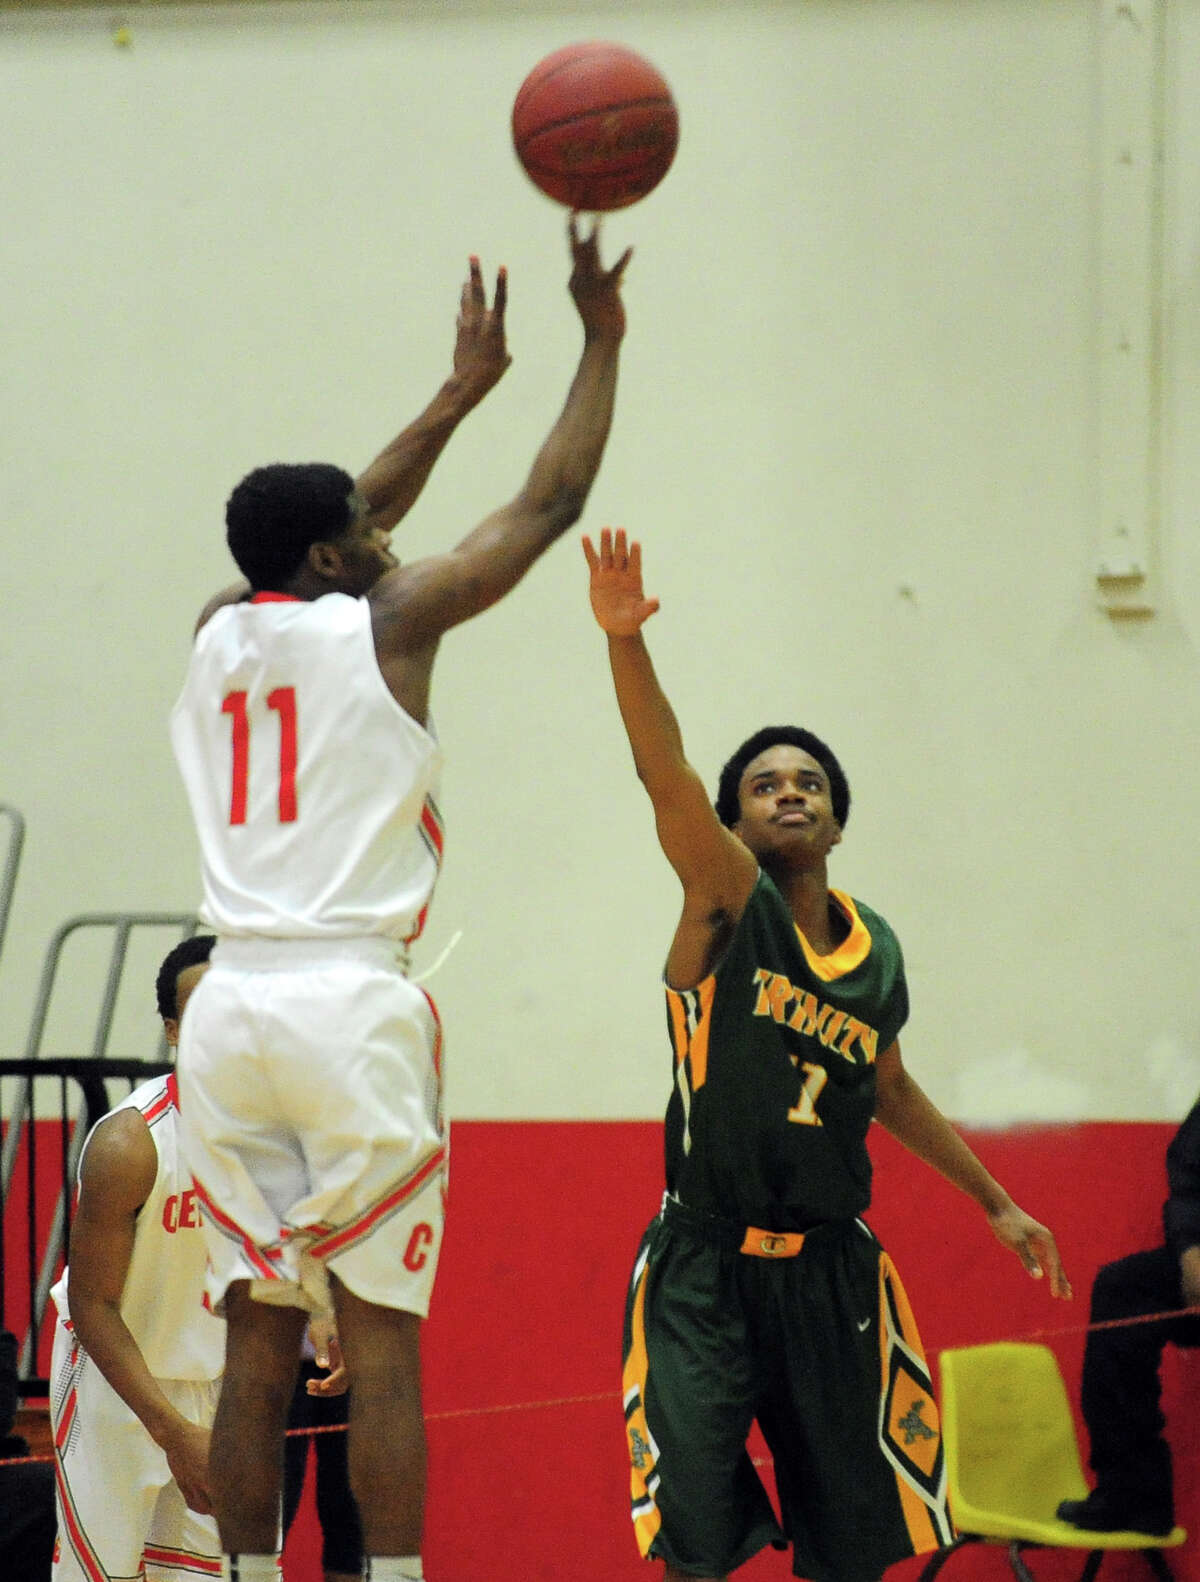 Boys basketball action between Trinity Catholic and Central in Bridgeport, Conn. on Wednesday January 8, 2014.